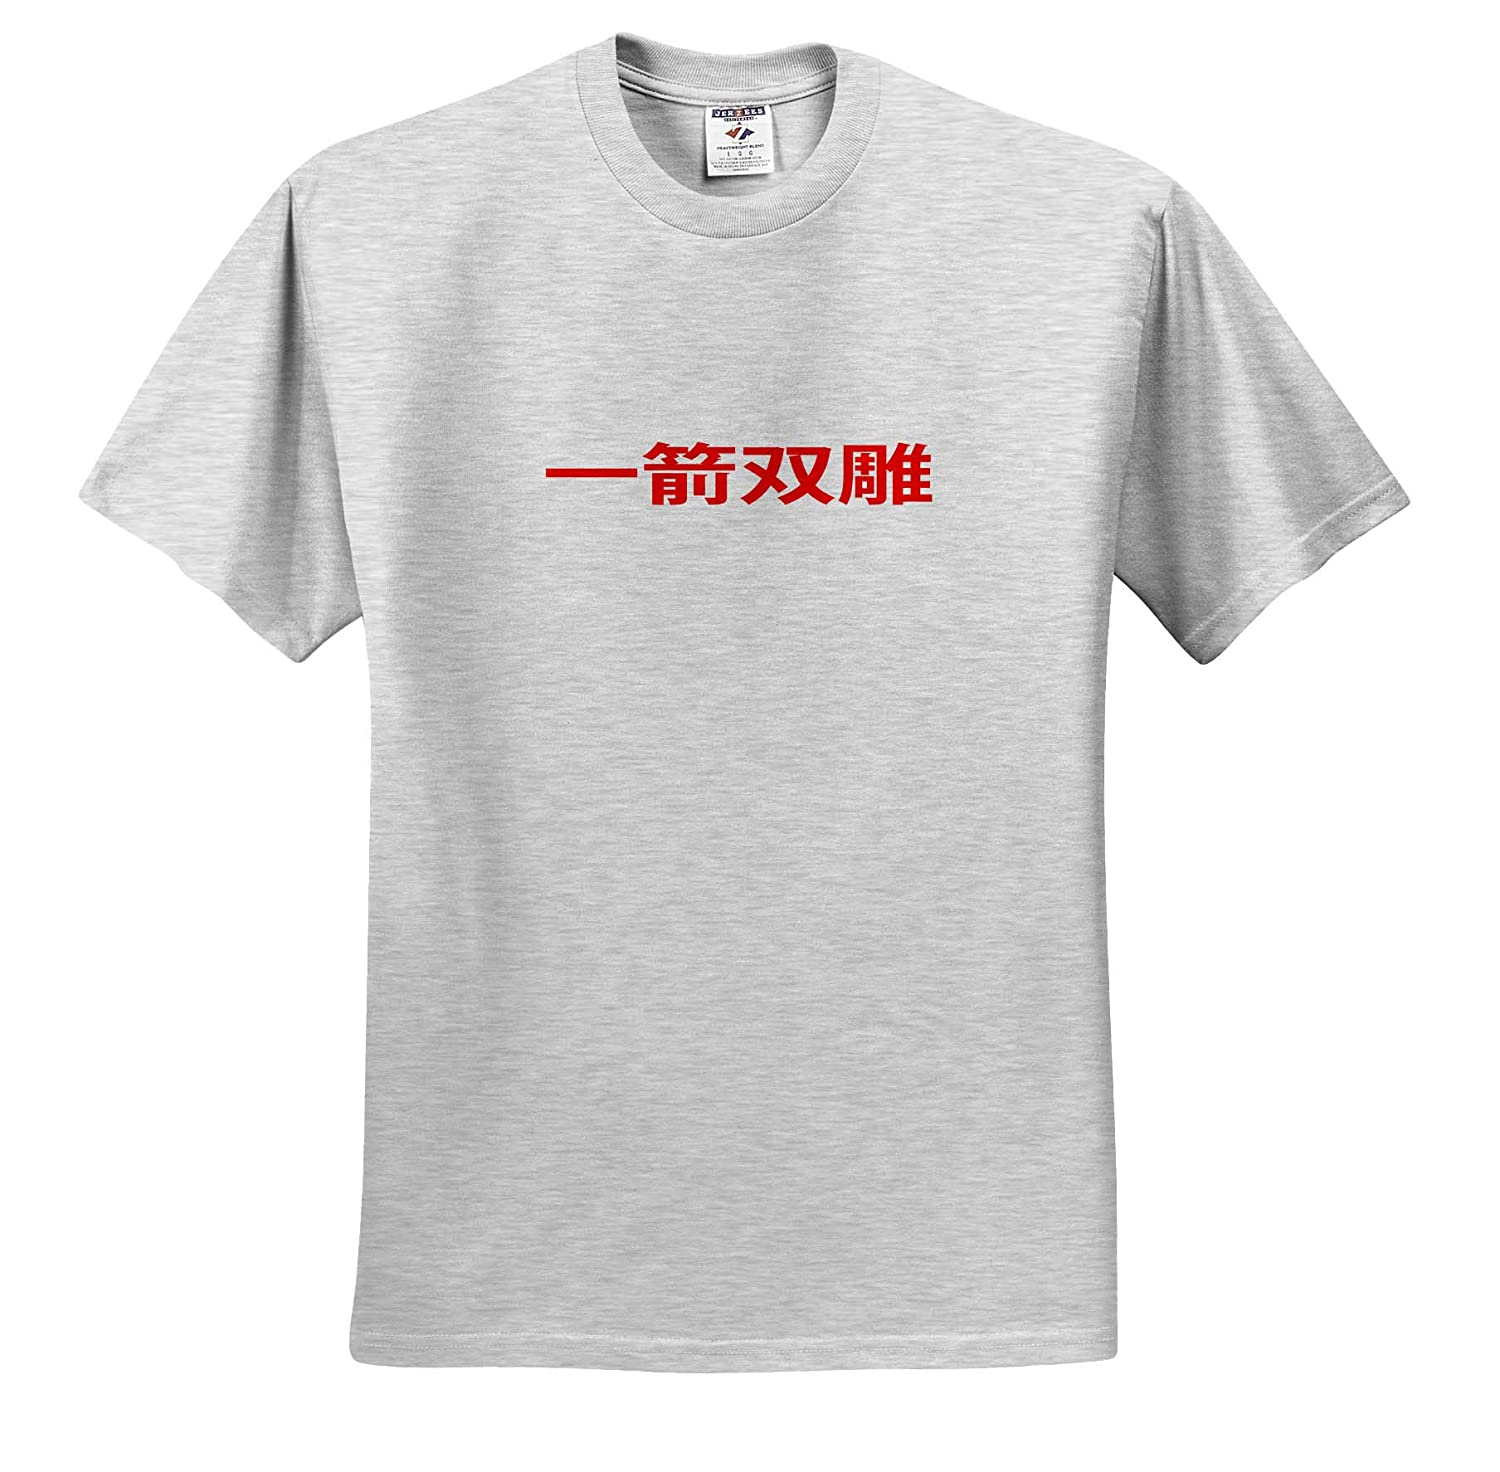 3dRose Kike Calvo Popular Chinese Expressions T-Shirts Kill Two Birds with one Stone